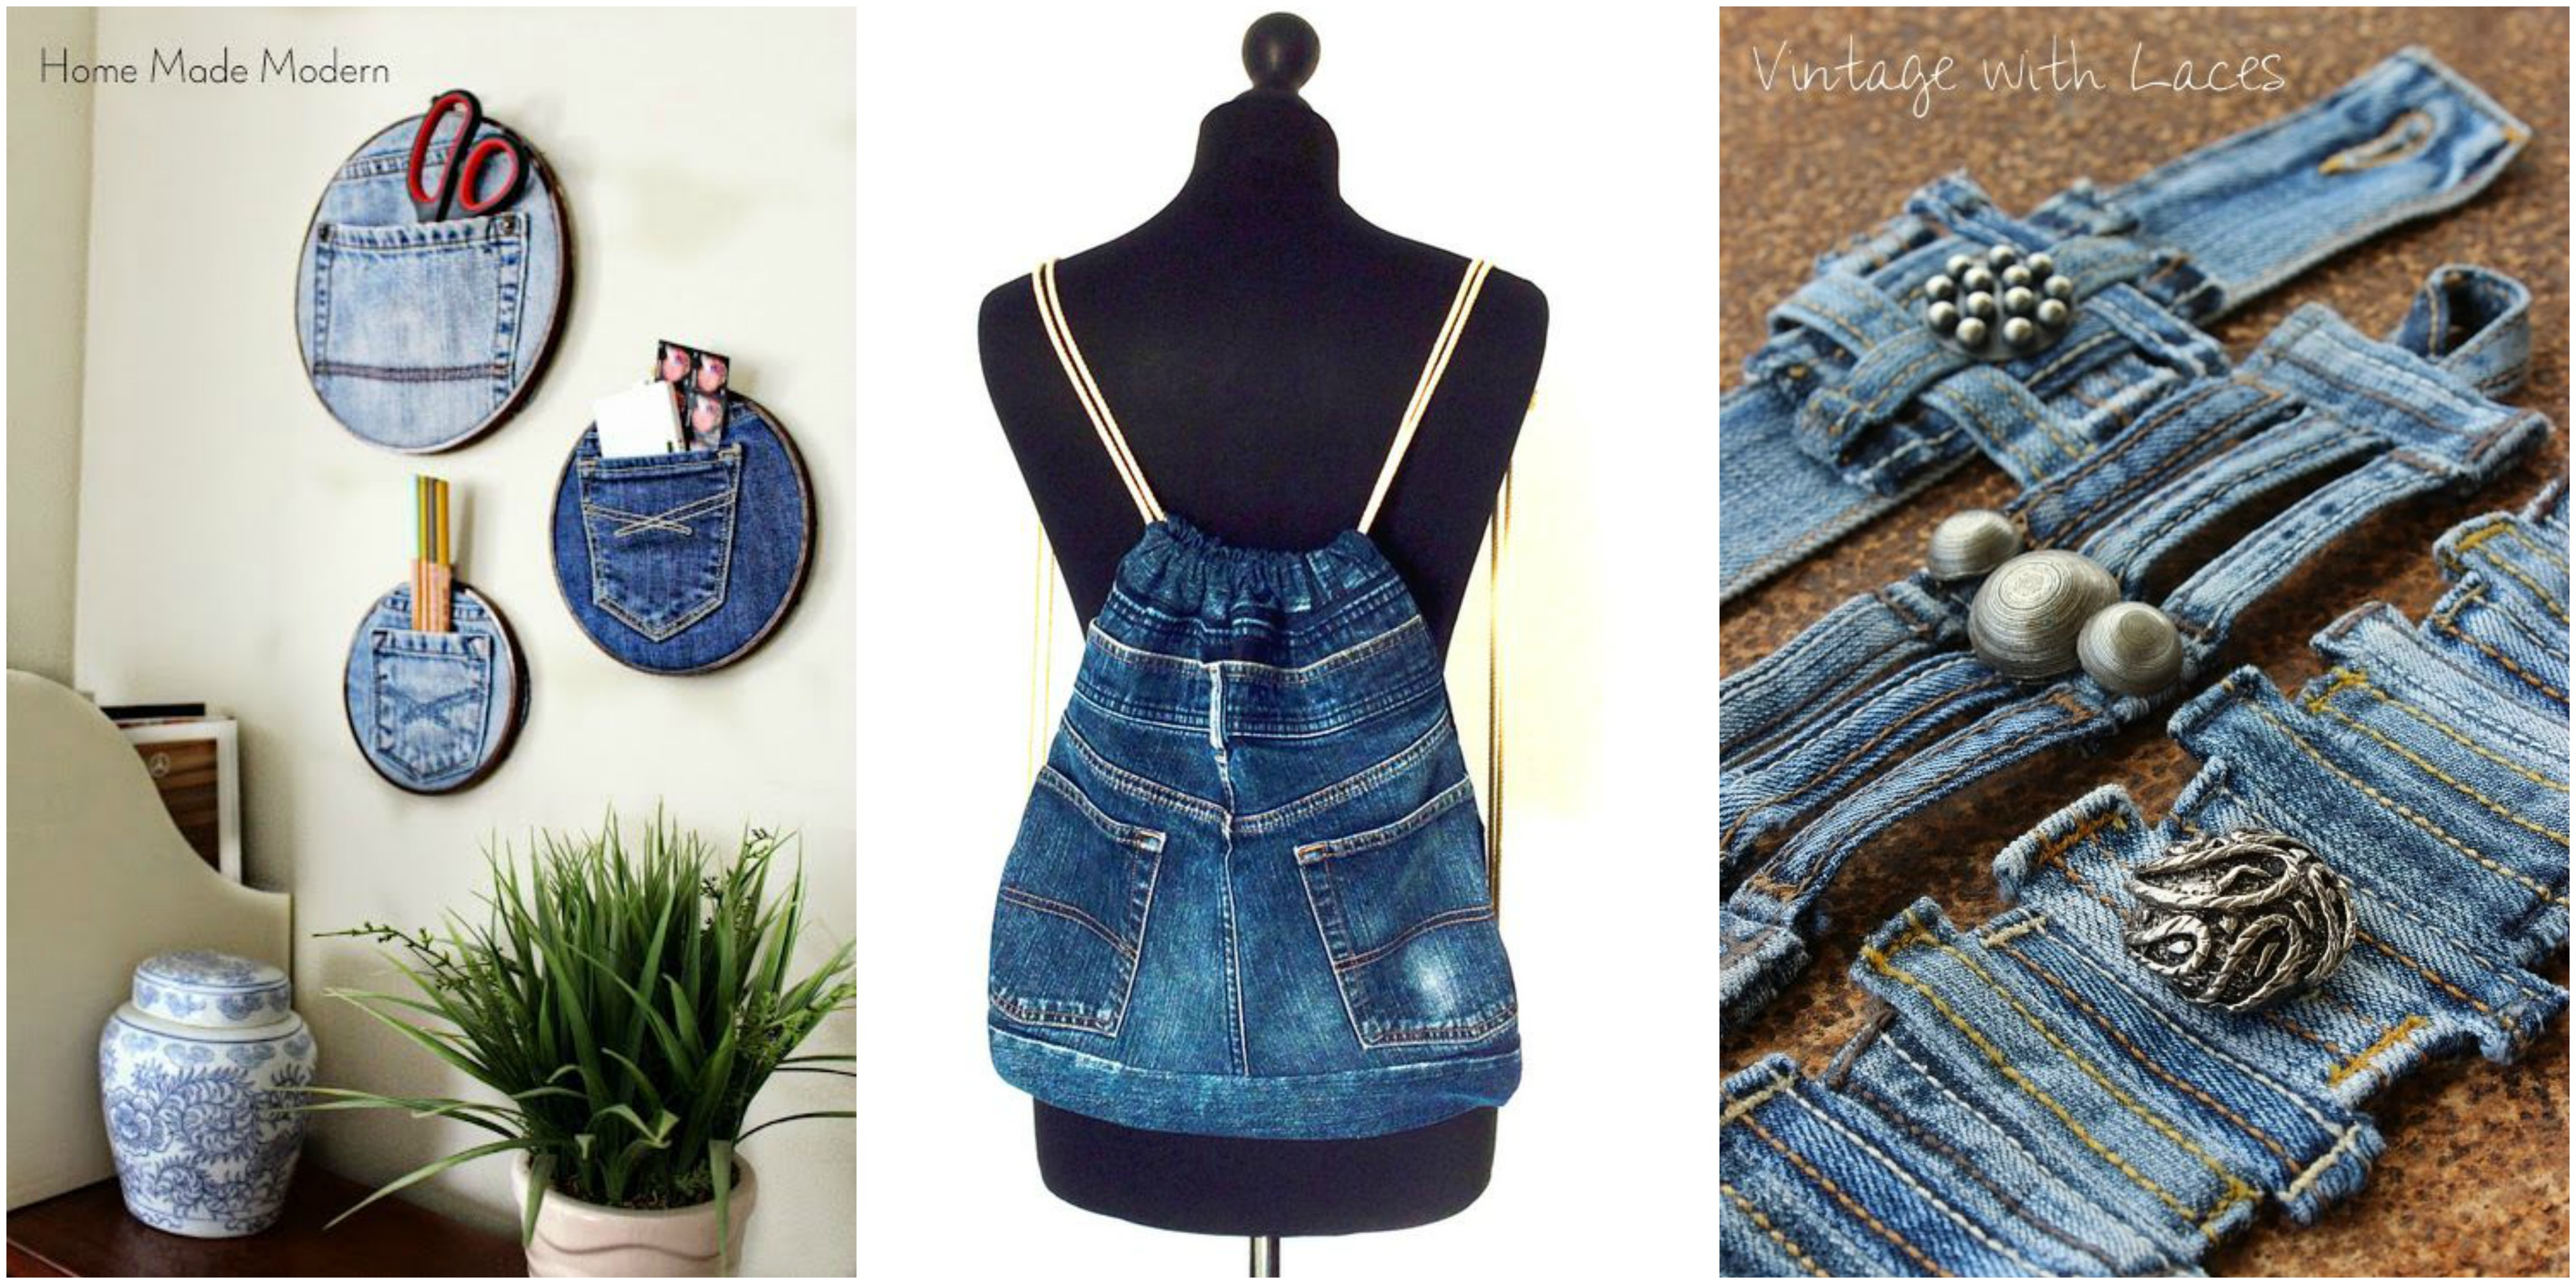 Do It Yourself Küche Alte Jeans - 15 Upcycling-ideen :) - Nettetipps.de